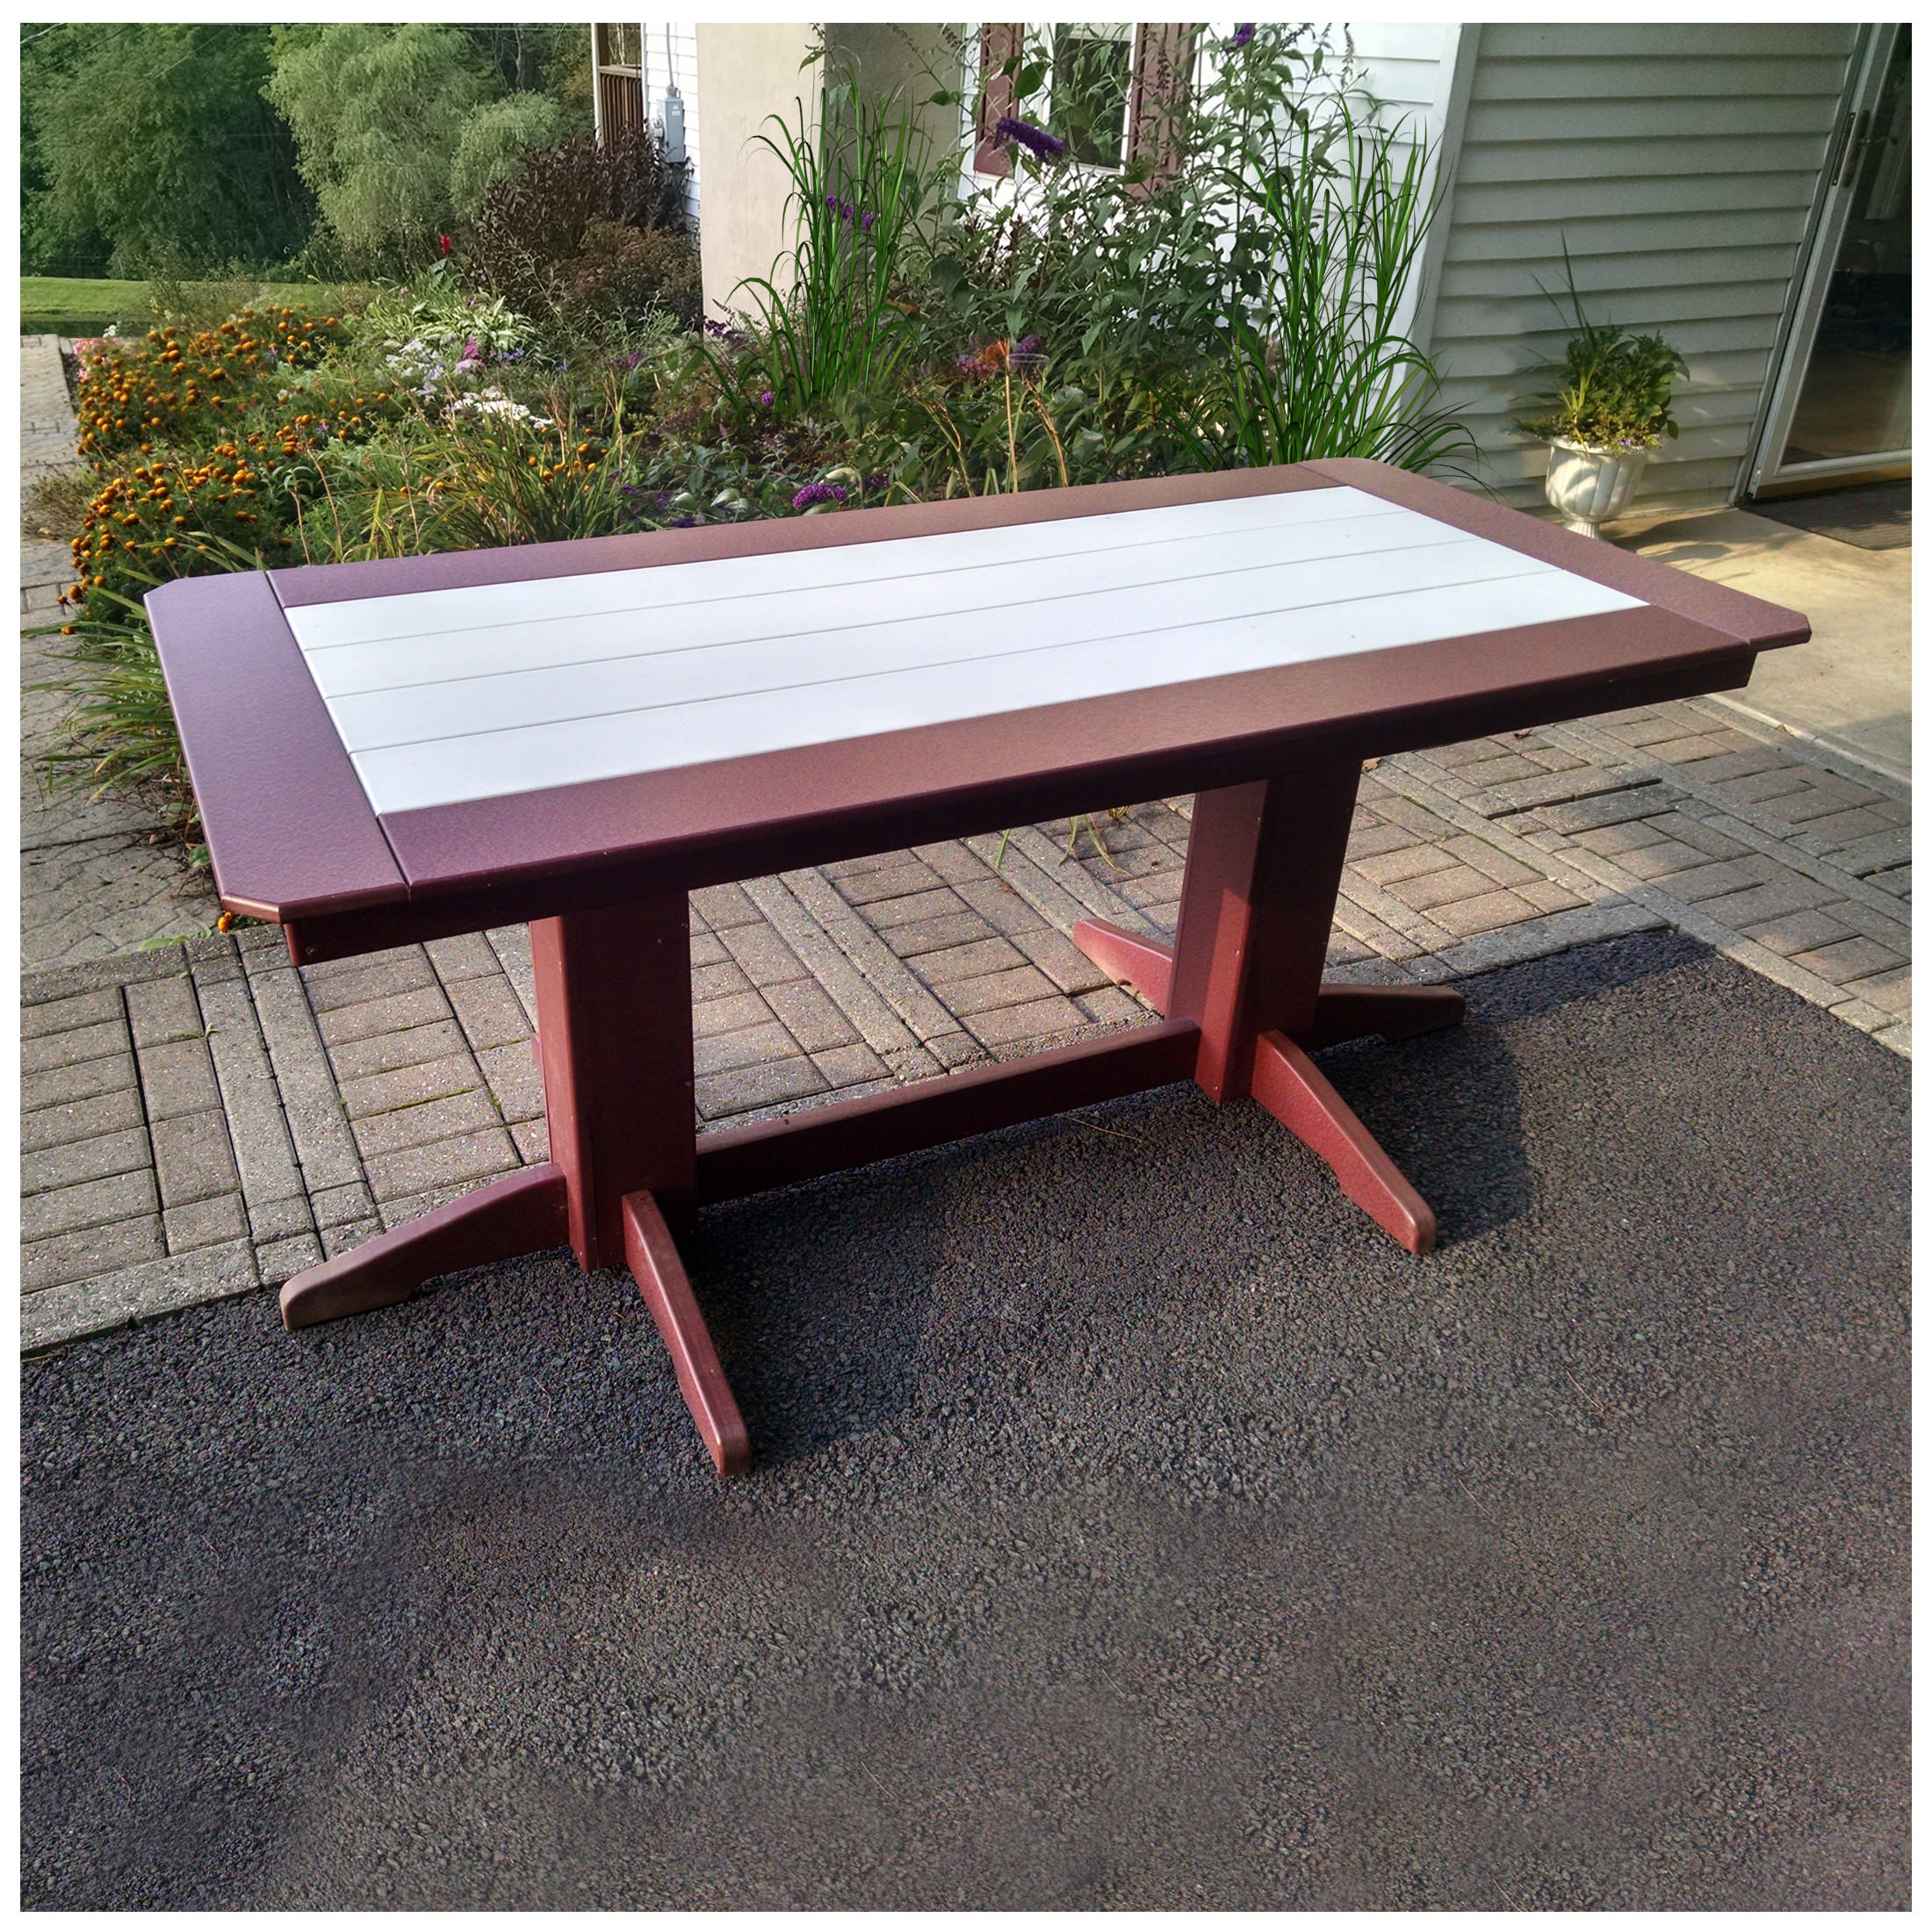 A&L Furniture 72 in x 33 in Dining Table